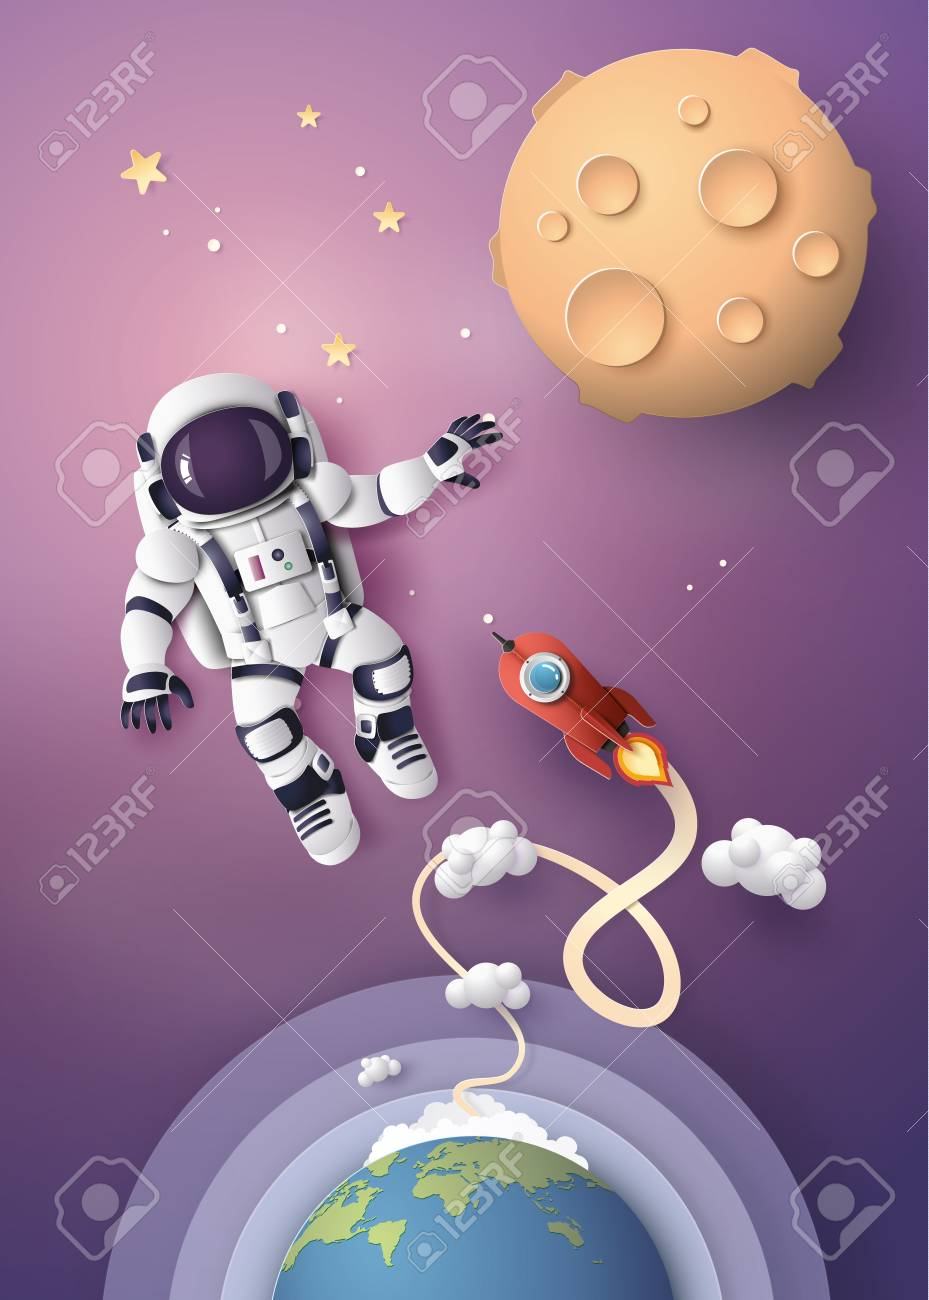 Astronaut Astronaut floating in the stratosphere. Paper art and craft style. - 109235633